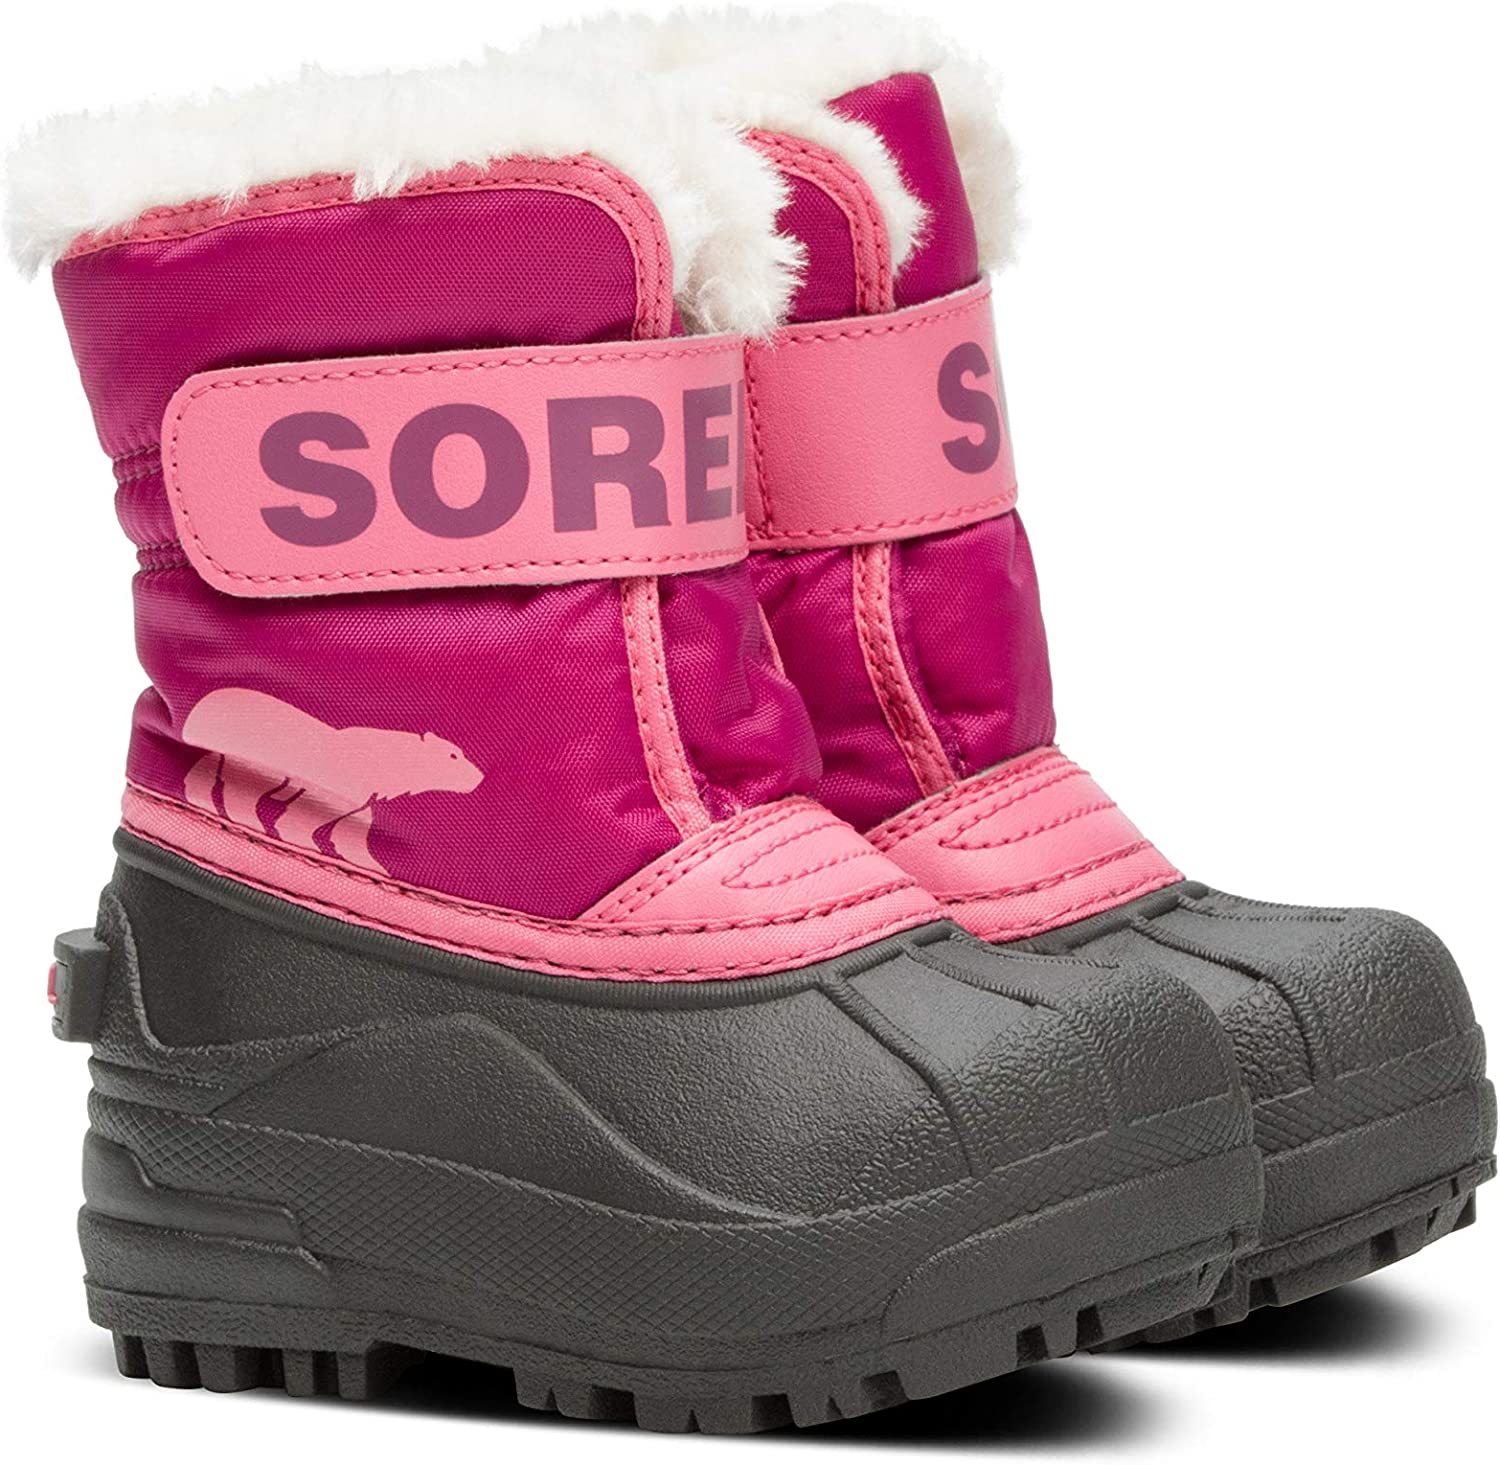 Sorel Toddler Snow Commander Boot for Rain and Snow Size 5 Waterproof Tropic Pink